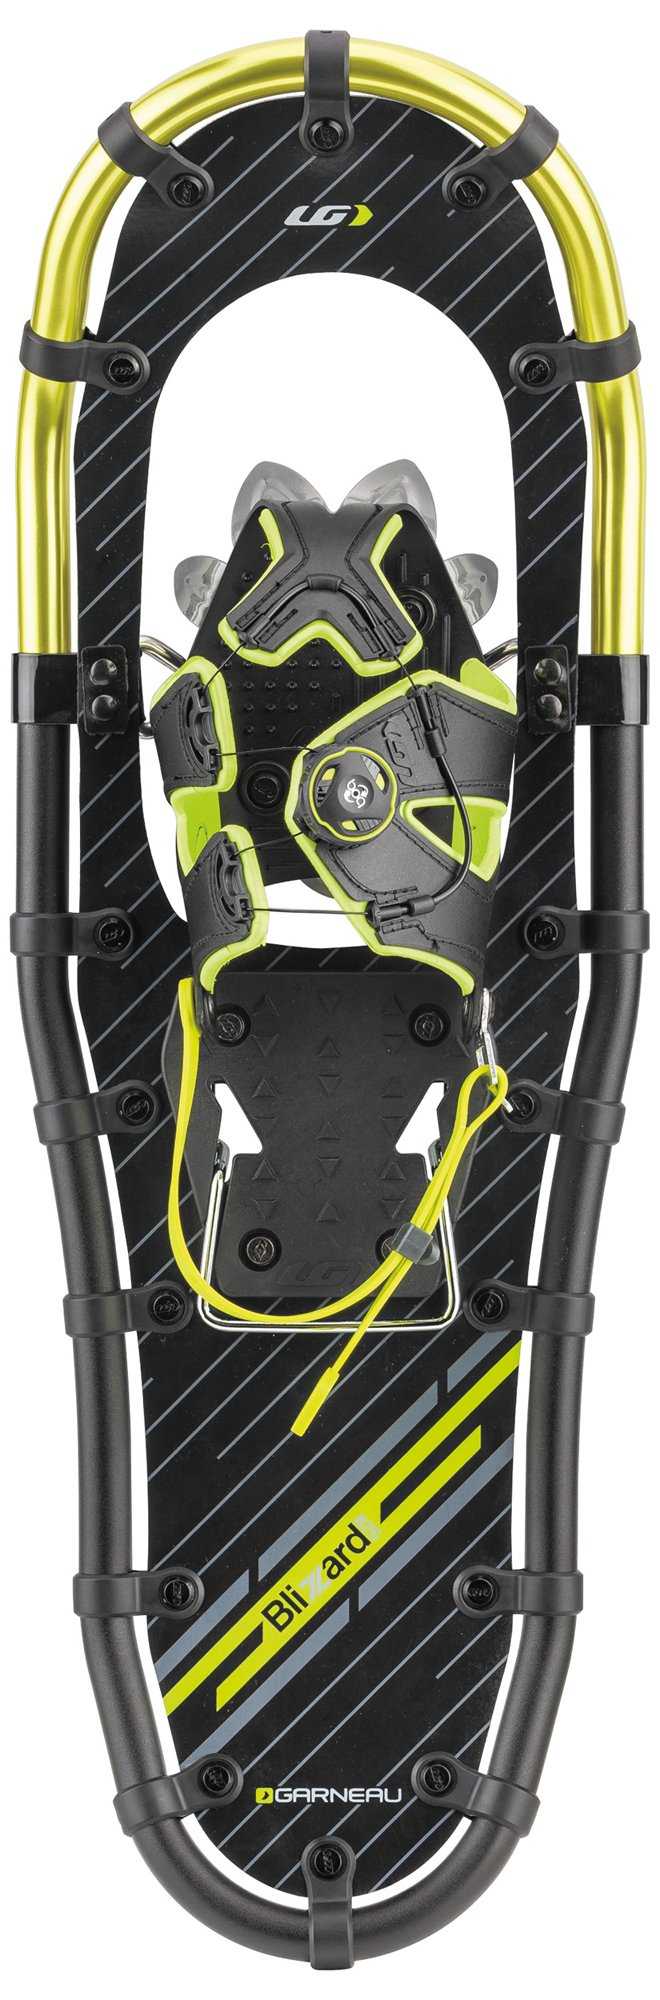 Louis Garneau - HG Men's Blizzard II Snowshoes, Lime, Size 1036 by Louis Garneau